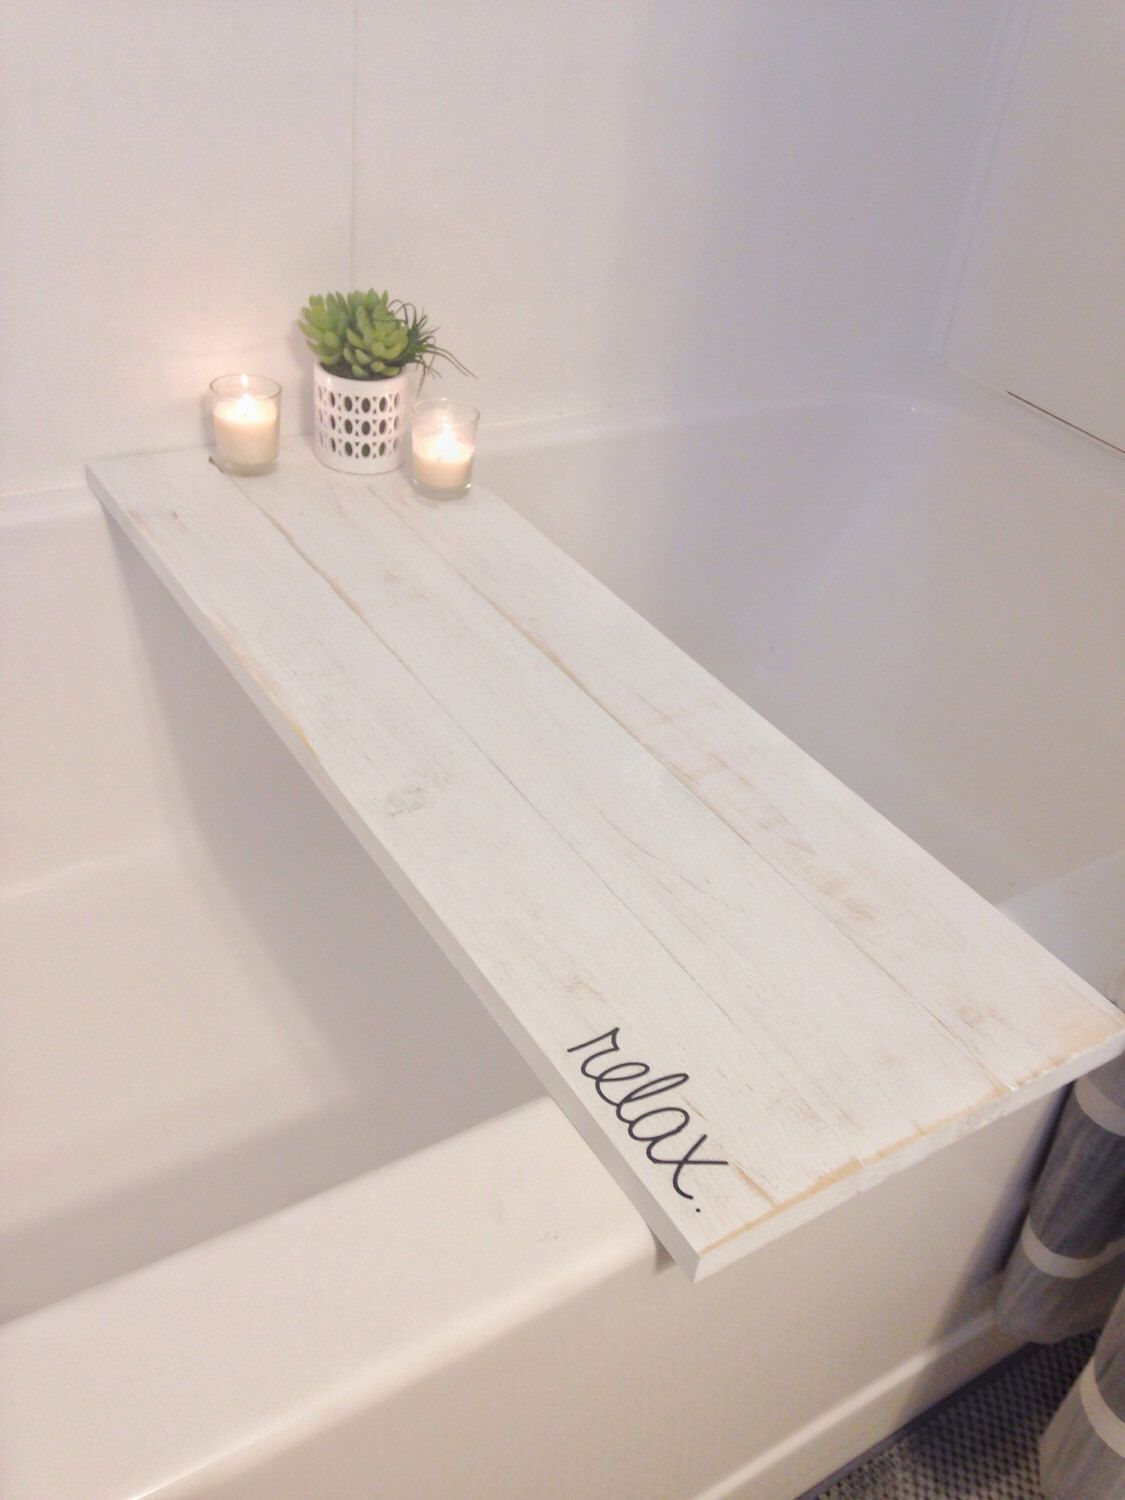 Bath Tub Tray Caddy, Bath Tray, Bath Caddy, White Rustic Relax ...